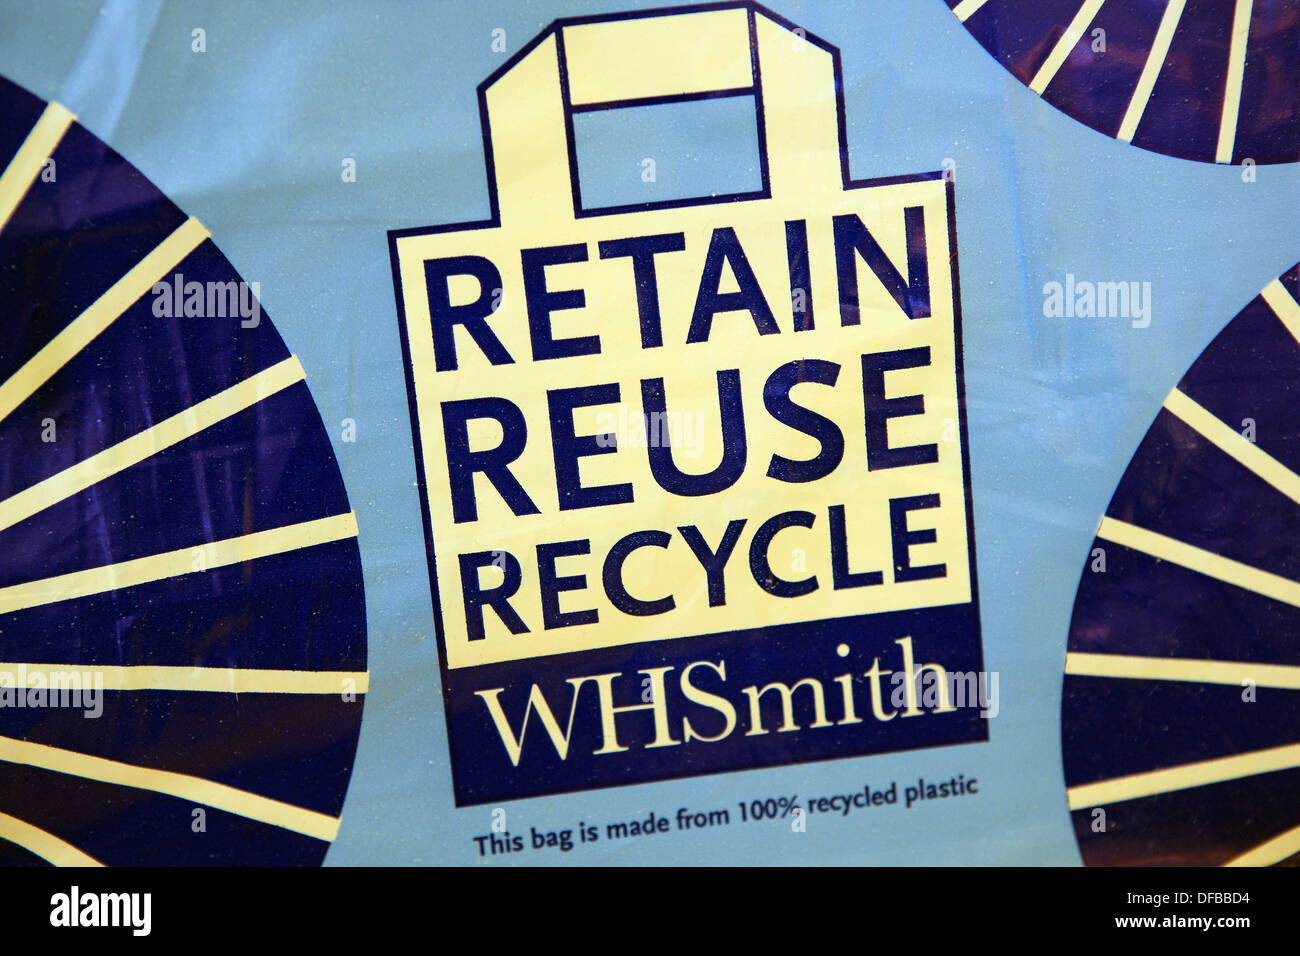 W H Smith reuse and recycle carrier bag - Stock Image